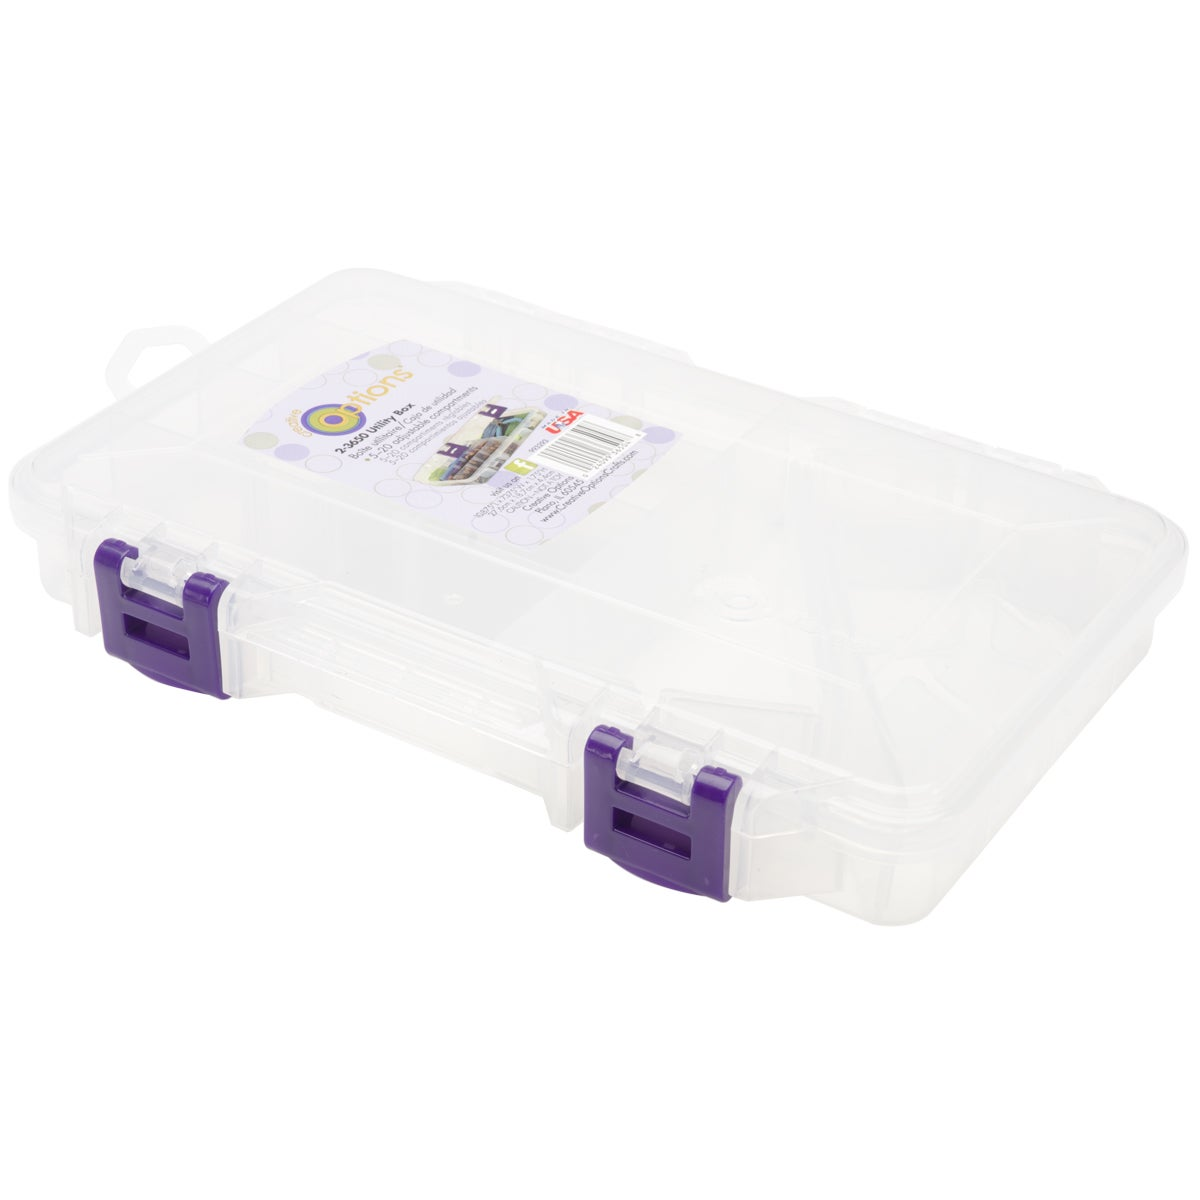 Creative Options Adjustable Organizer-Clear/Purple Latch